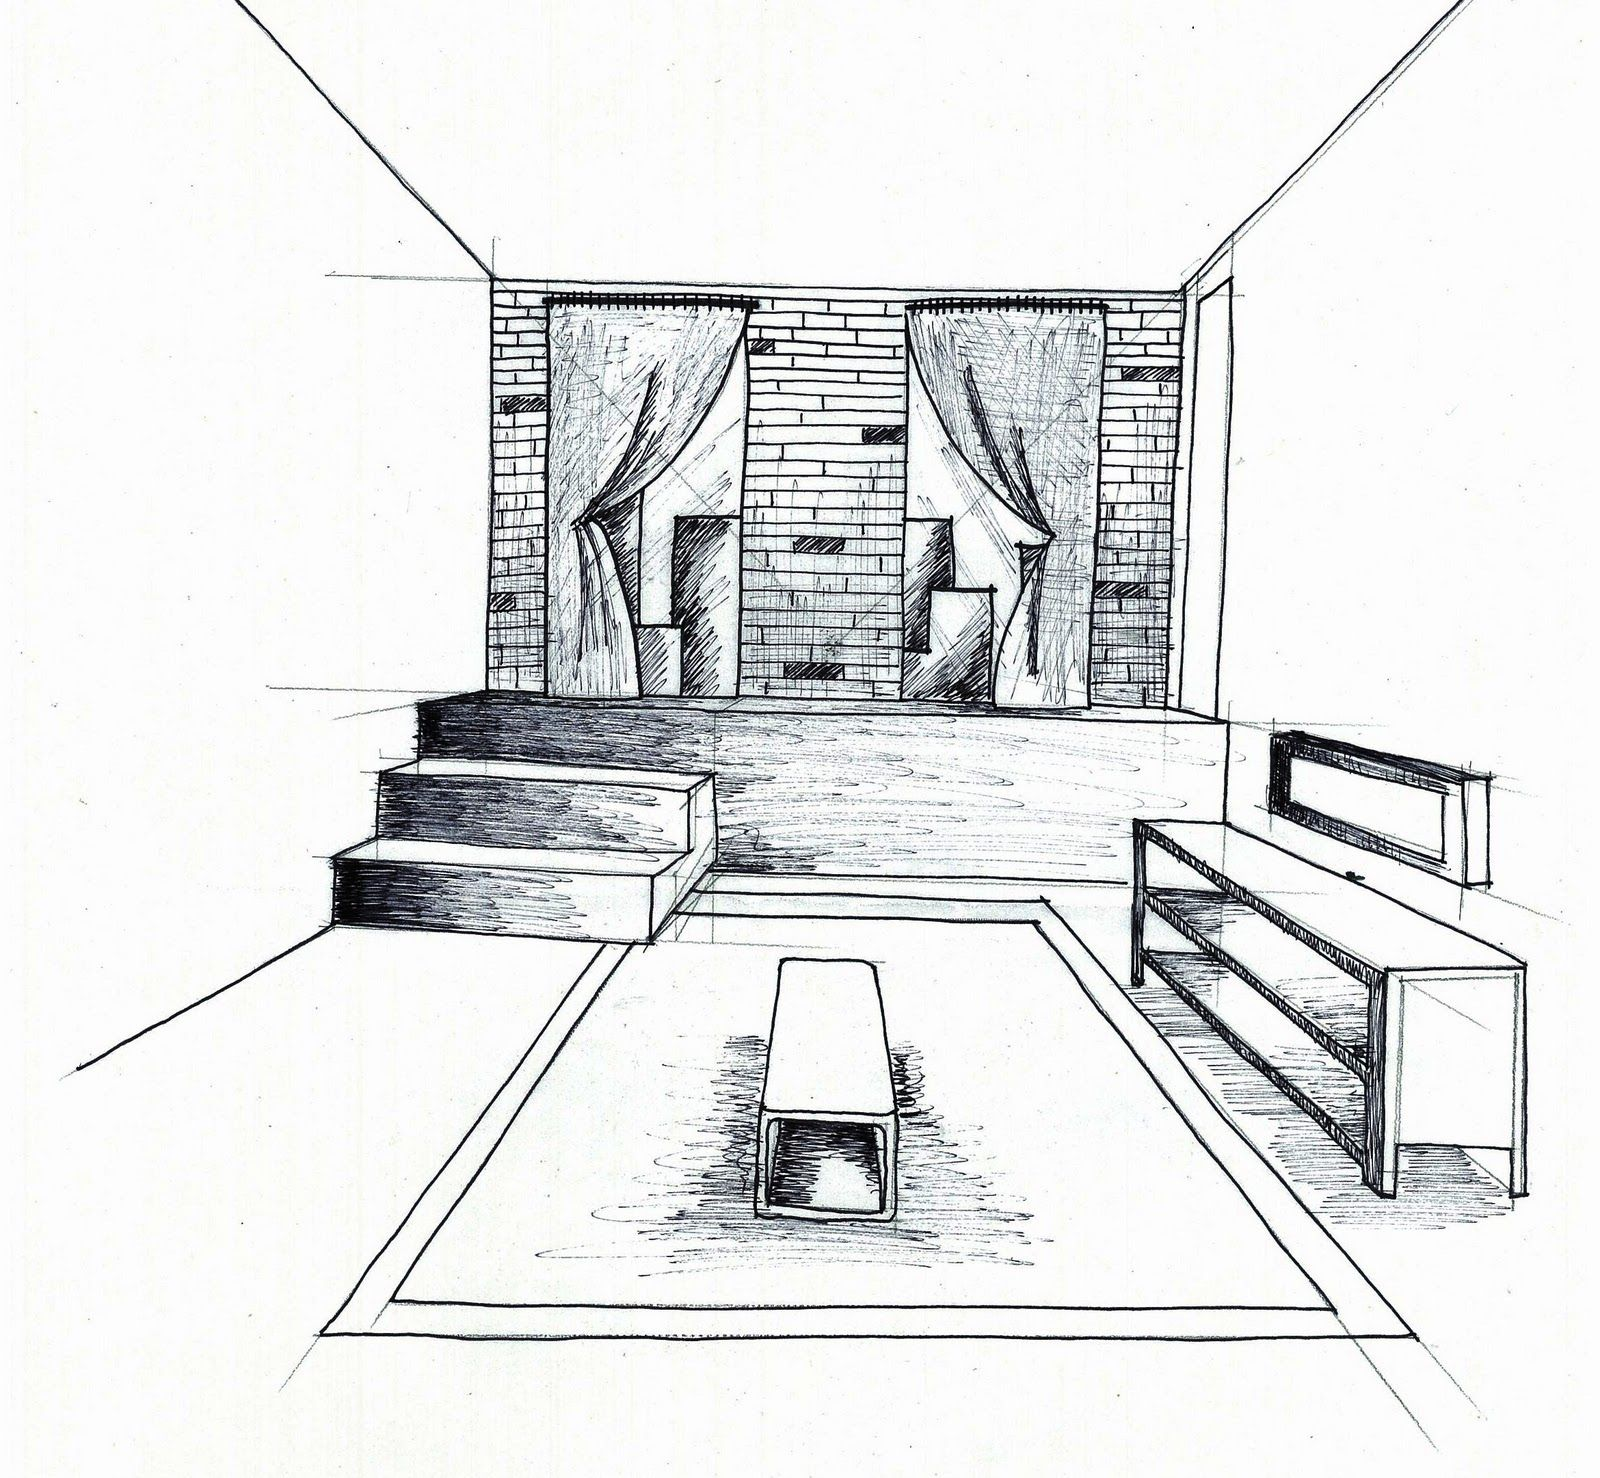 1 Point Of View Room In Drawing